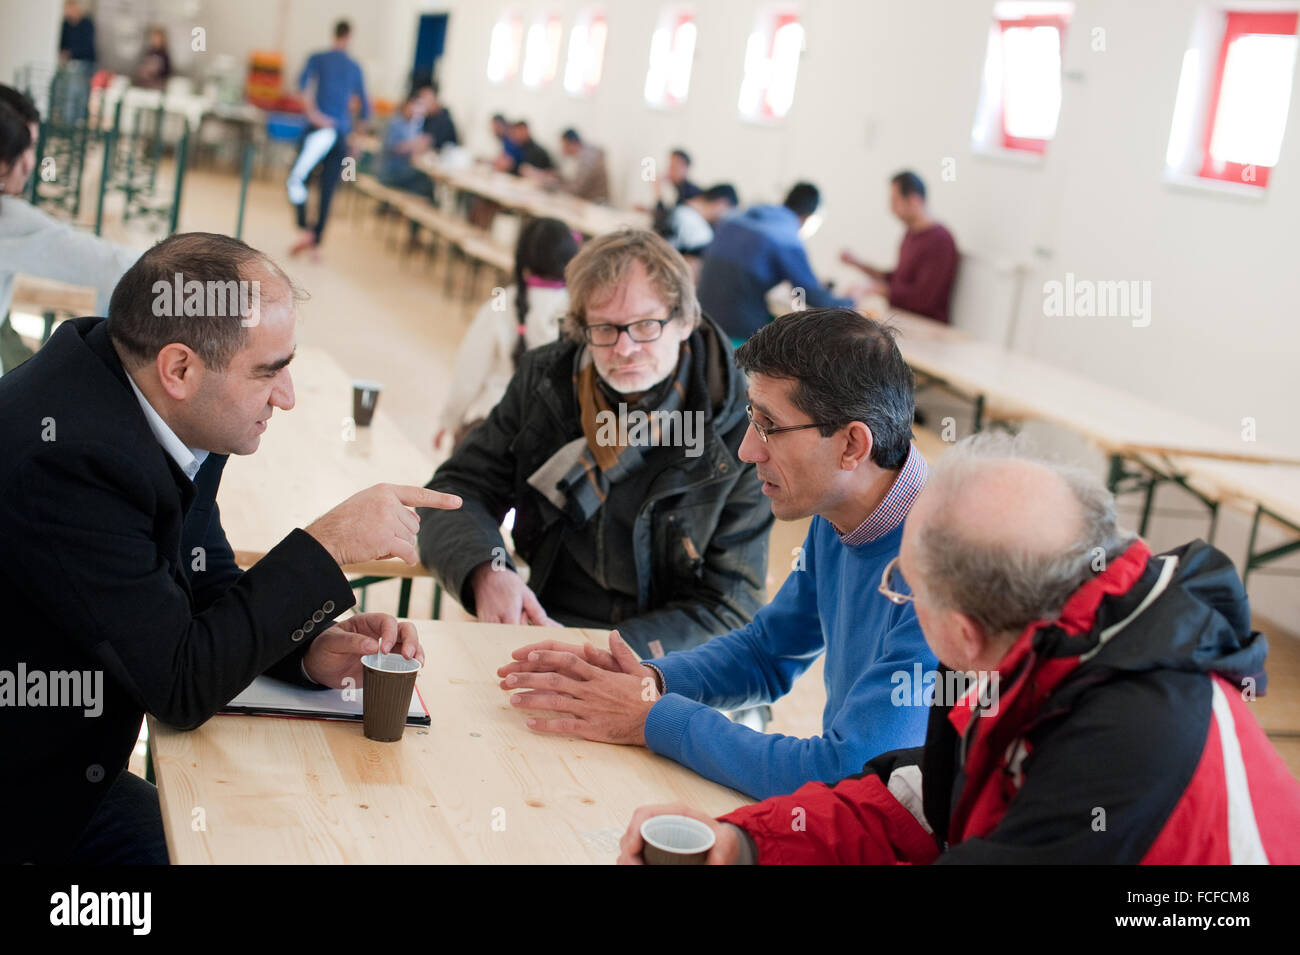 Axel Werner Stock Photos Axel Werner Stock Images Alamy